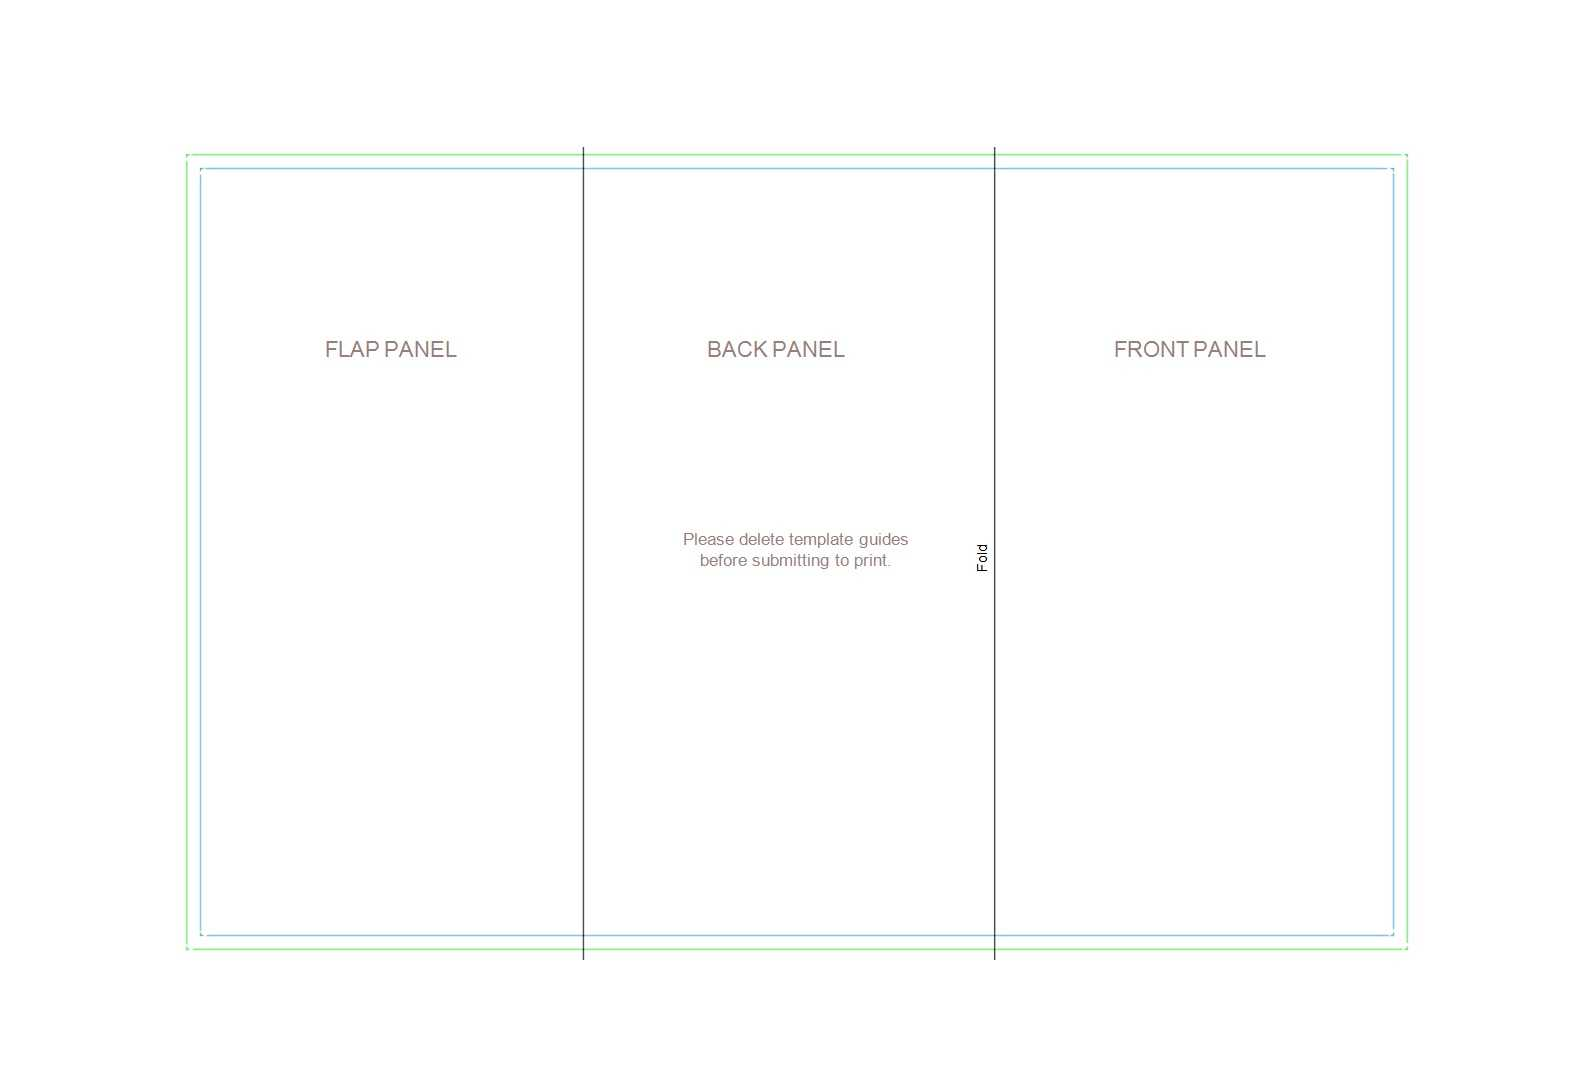 50 Free Pamphlet Templates [Word / Google Docs] ᐅ Templatelab Intended For Brochure Template For Google Docs